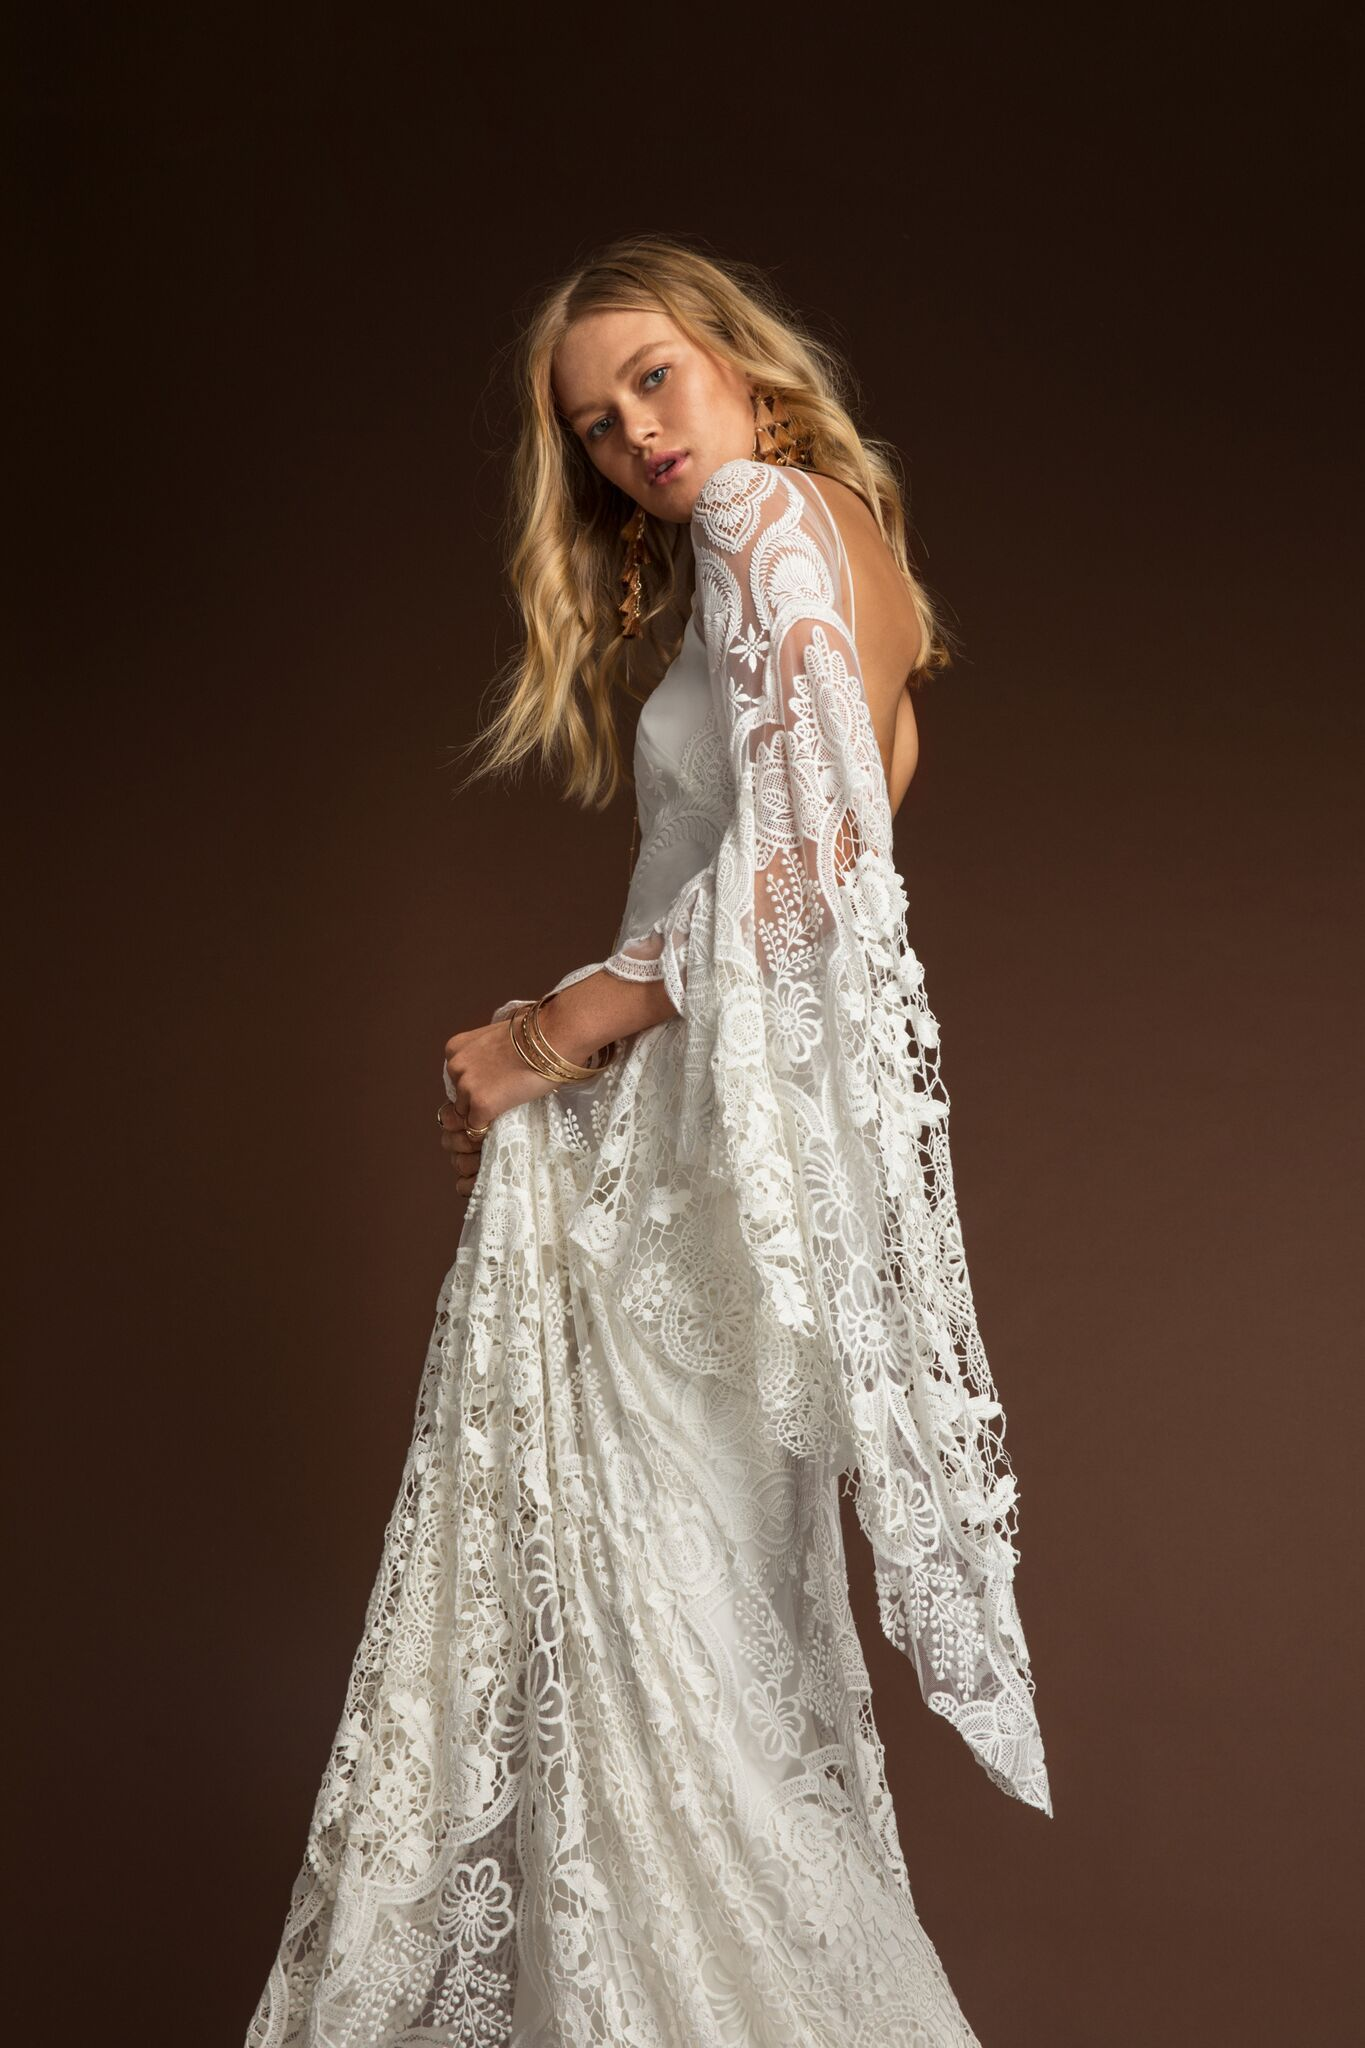 New rue de seine wedding dresses trunk shows boho bridal